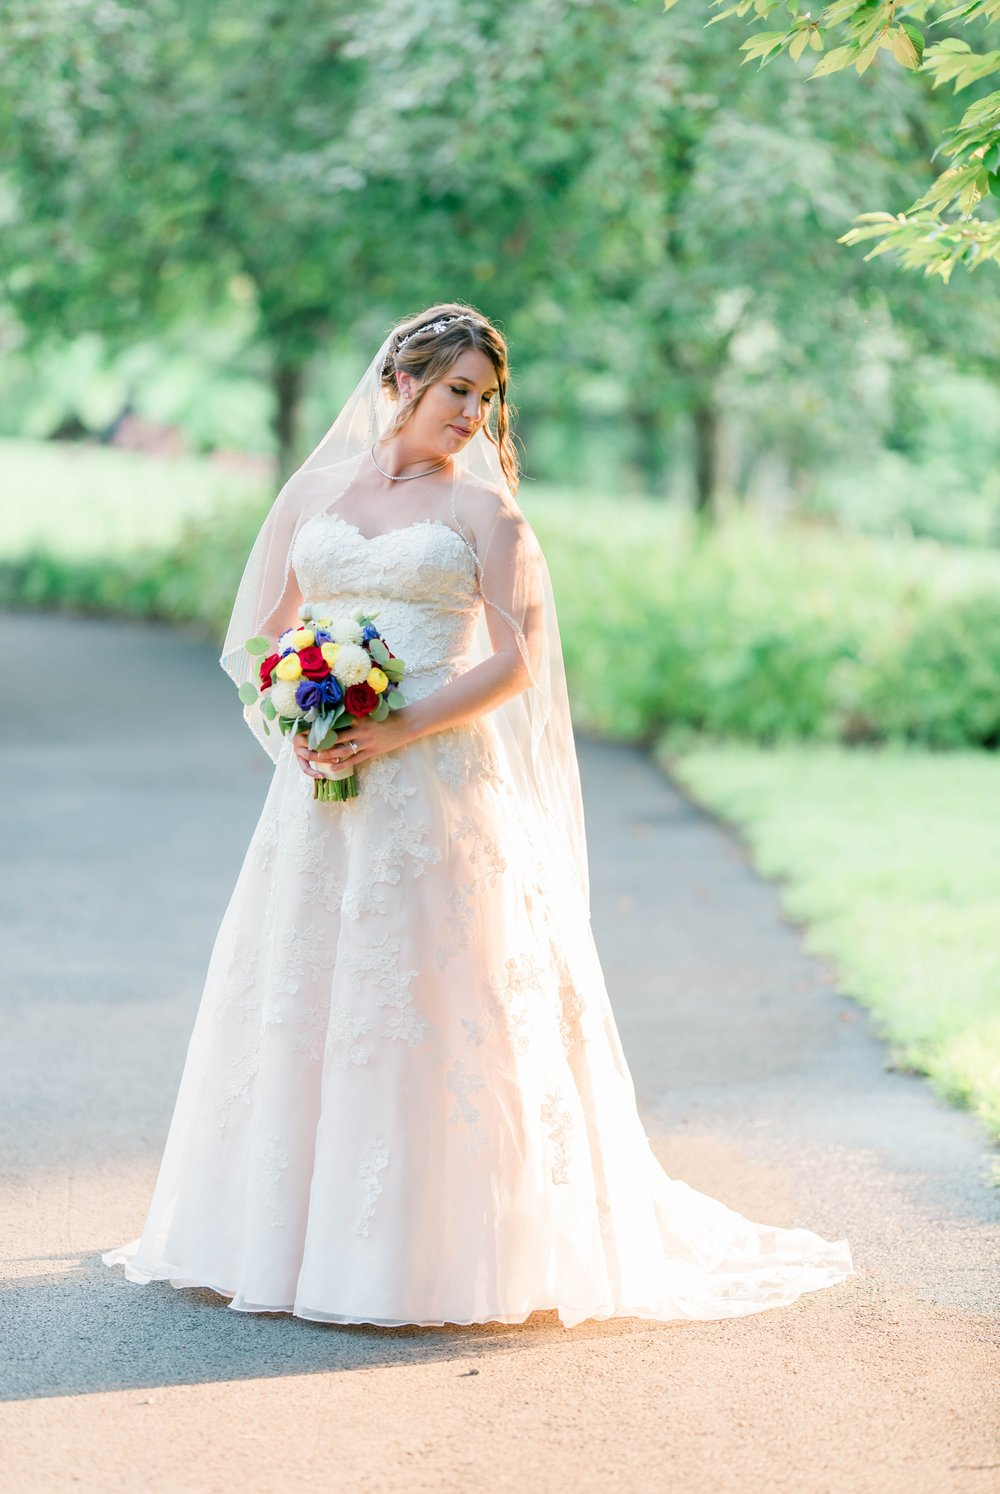 TheAtriumatMeadowlark_Virginiawedding photographer_lynchburgweddingphotographer_DCweddingPhotographer_KristinAaron 33.jpg